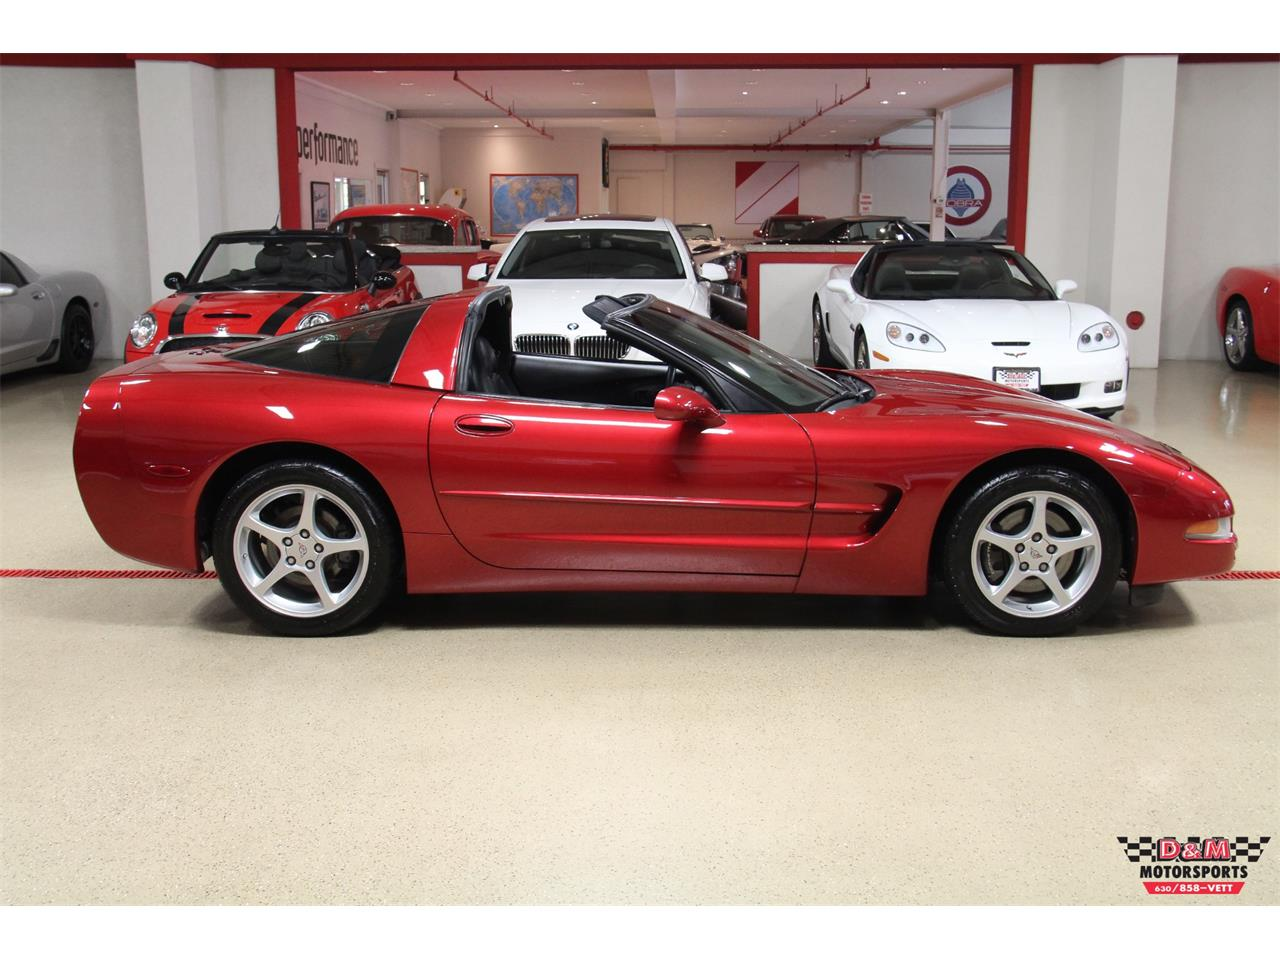 Large Picture of '00 Corvette located in Illinois - $15,995.00 Offered by D & M Motorsports - LVA3